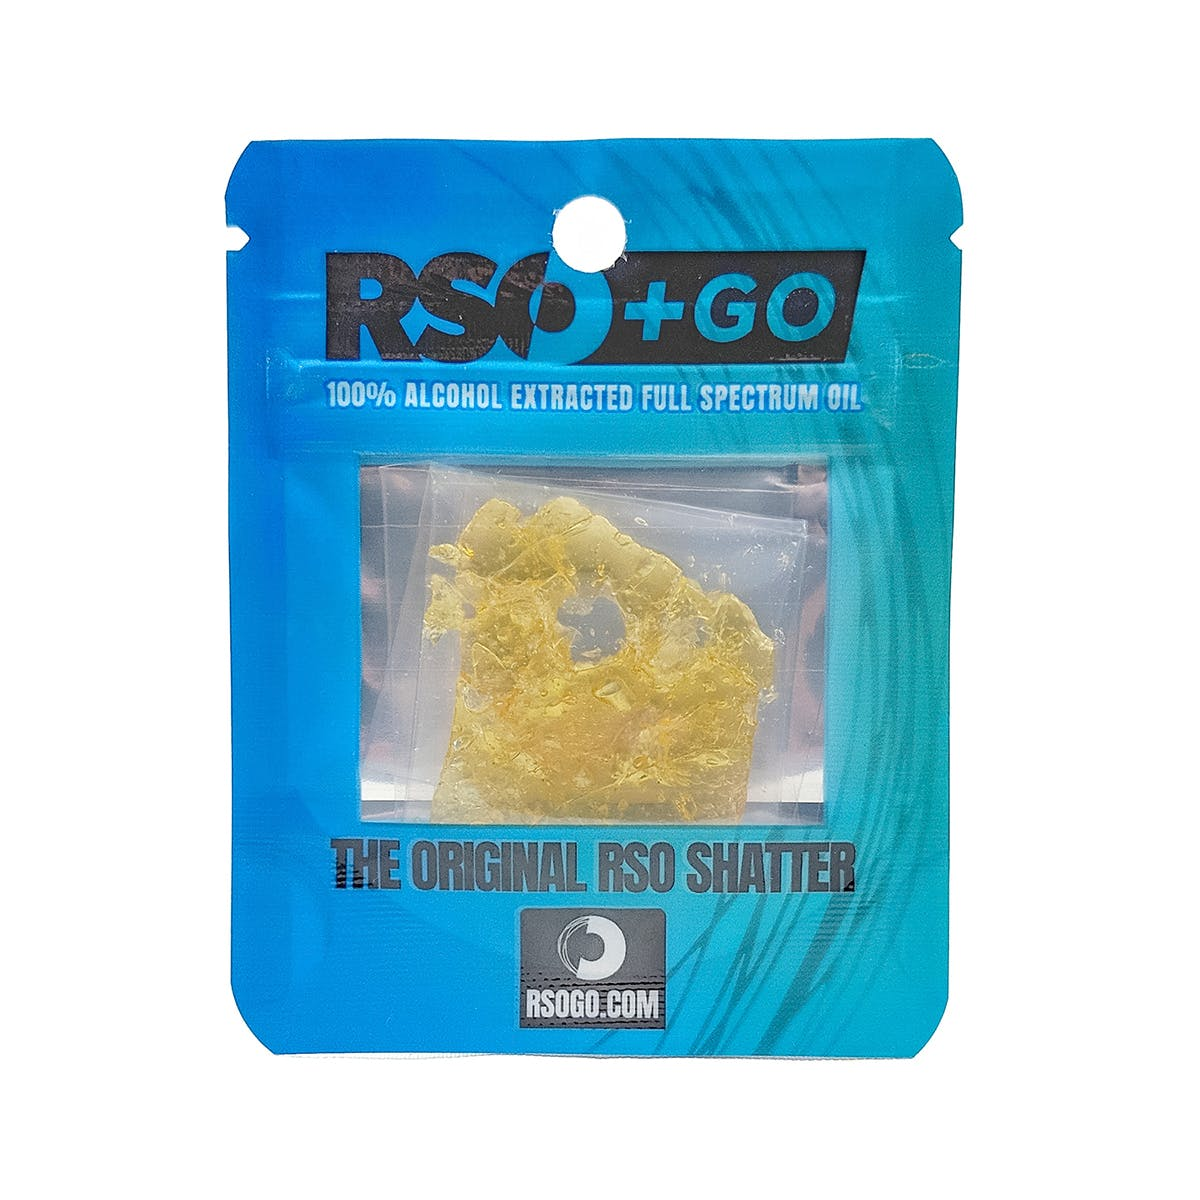 marijuana-dispensaries-112th-street-cannabis-in-puyallup-rso-2bgo-shatter-tropicanna-cookies-wa